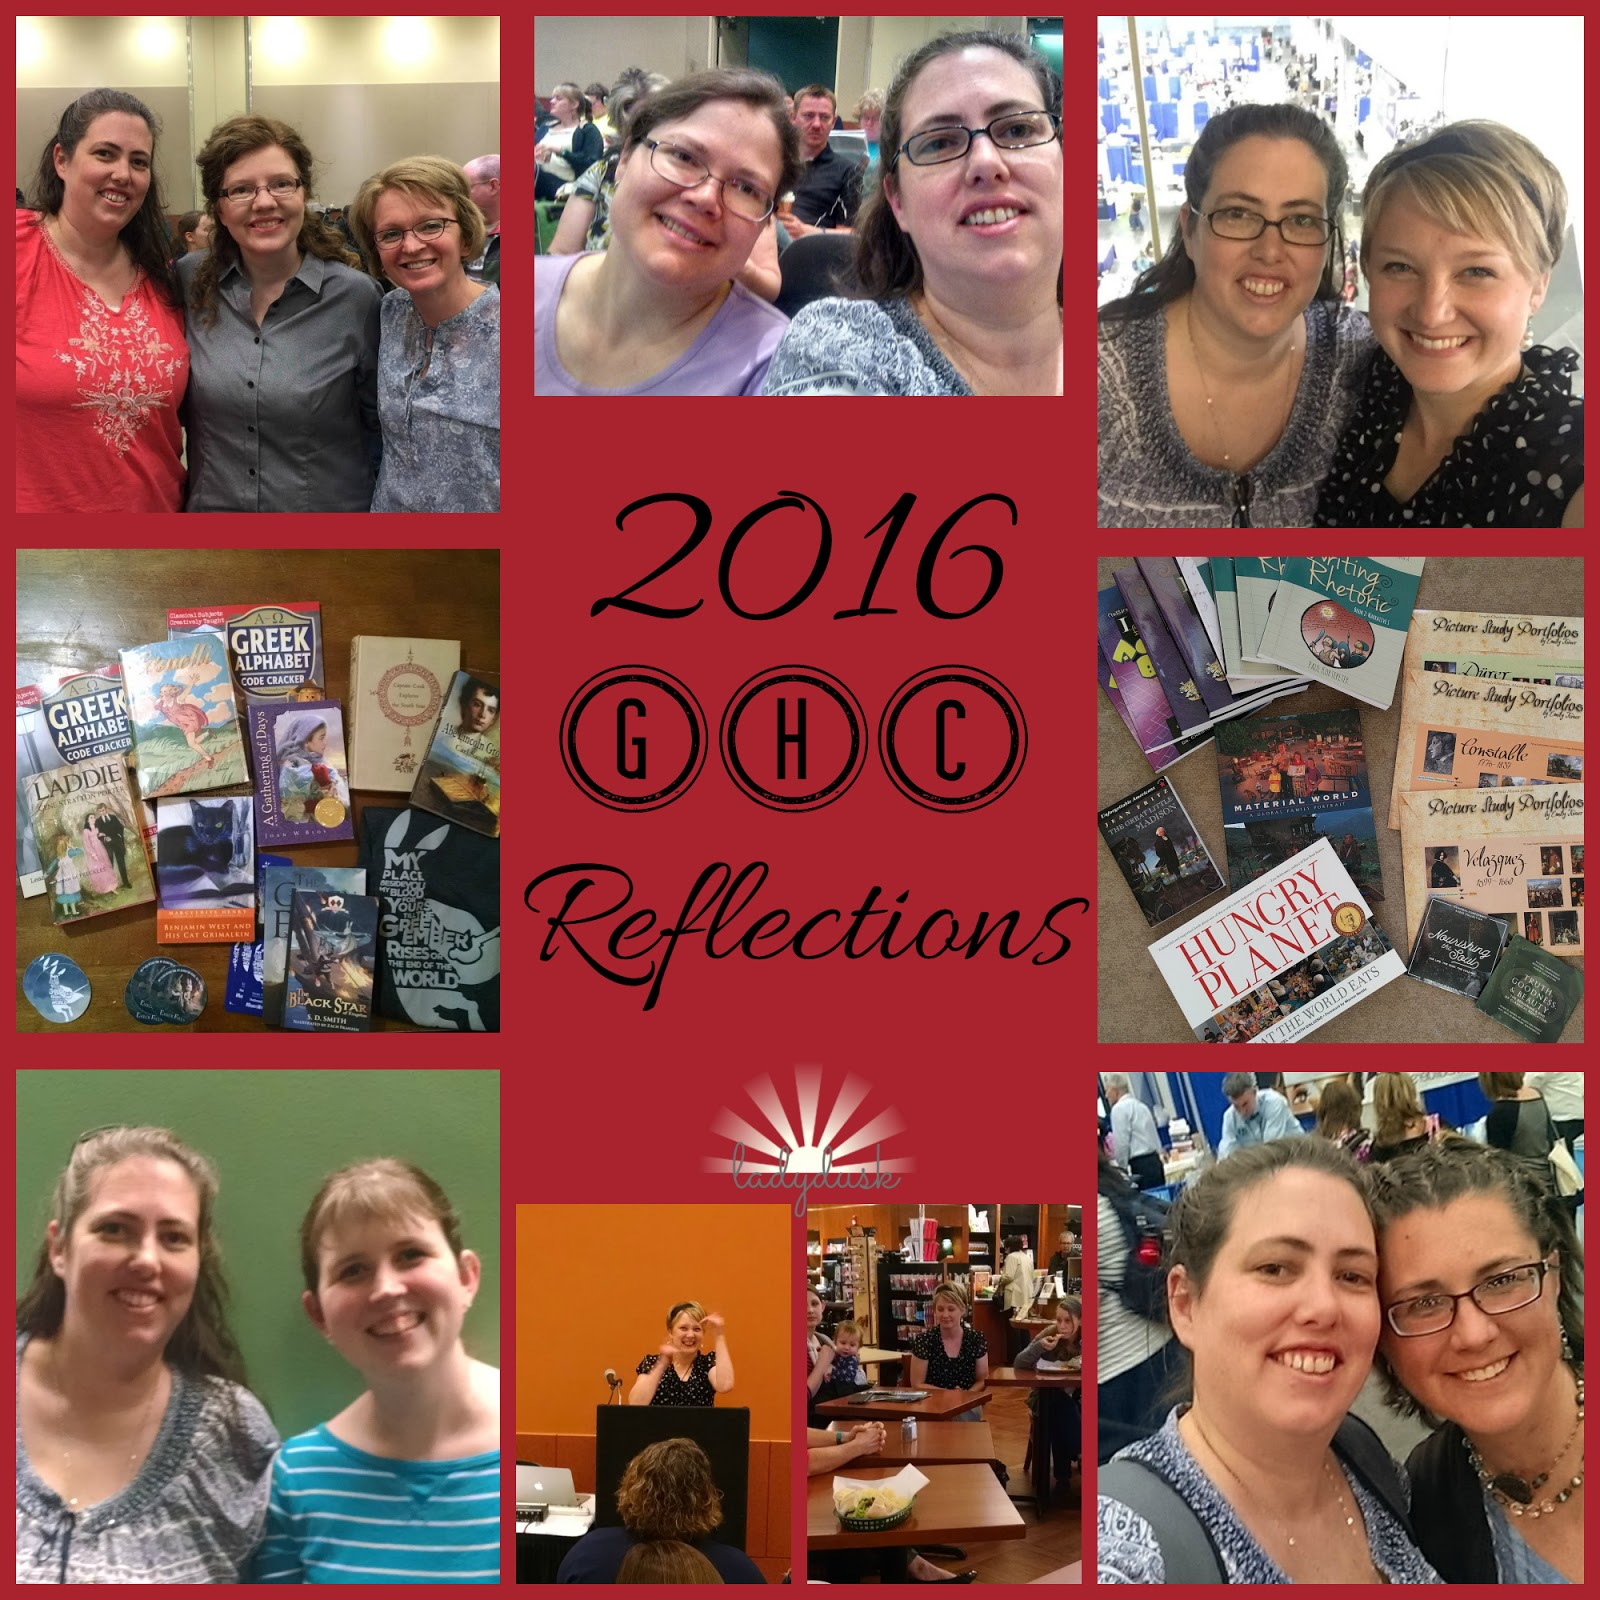 2016 HSC Reflections: People, Purchases, Presentations